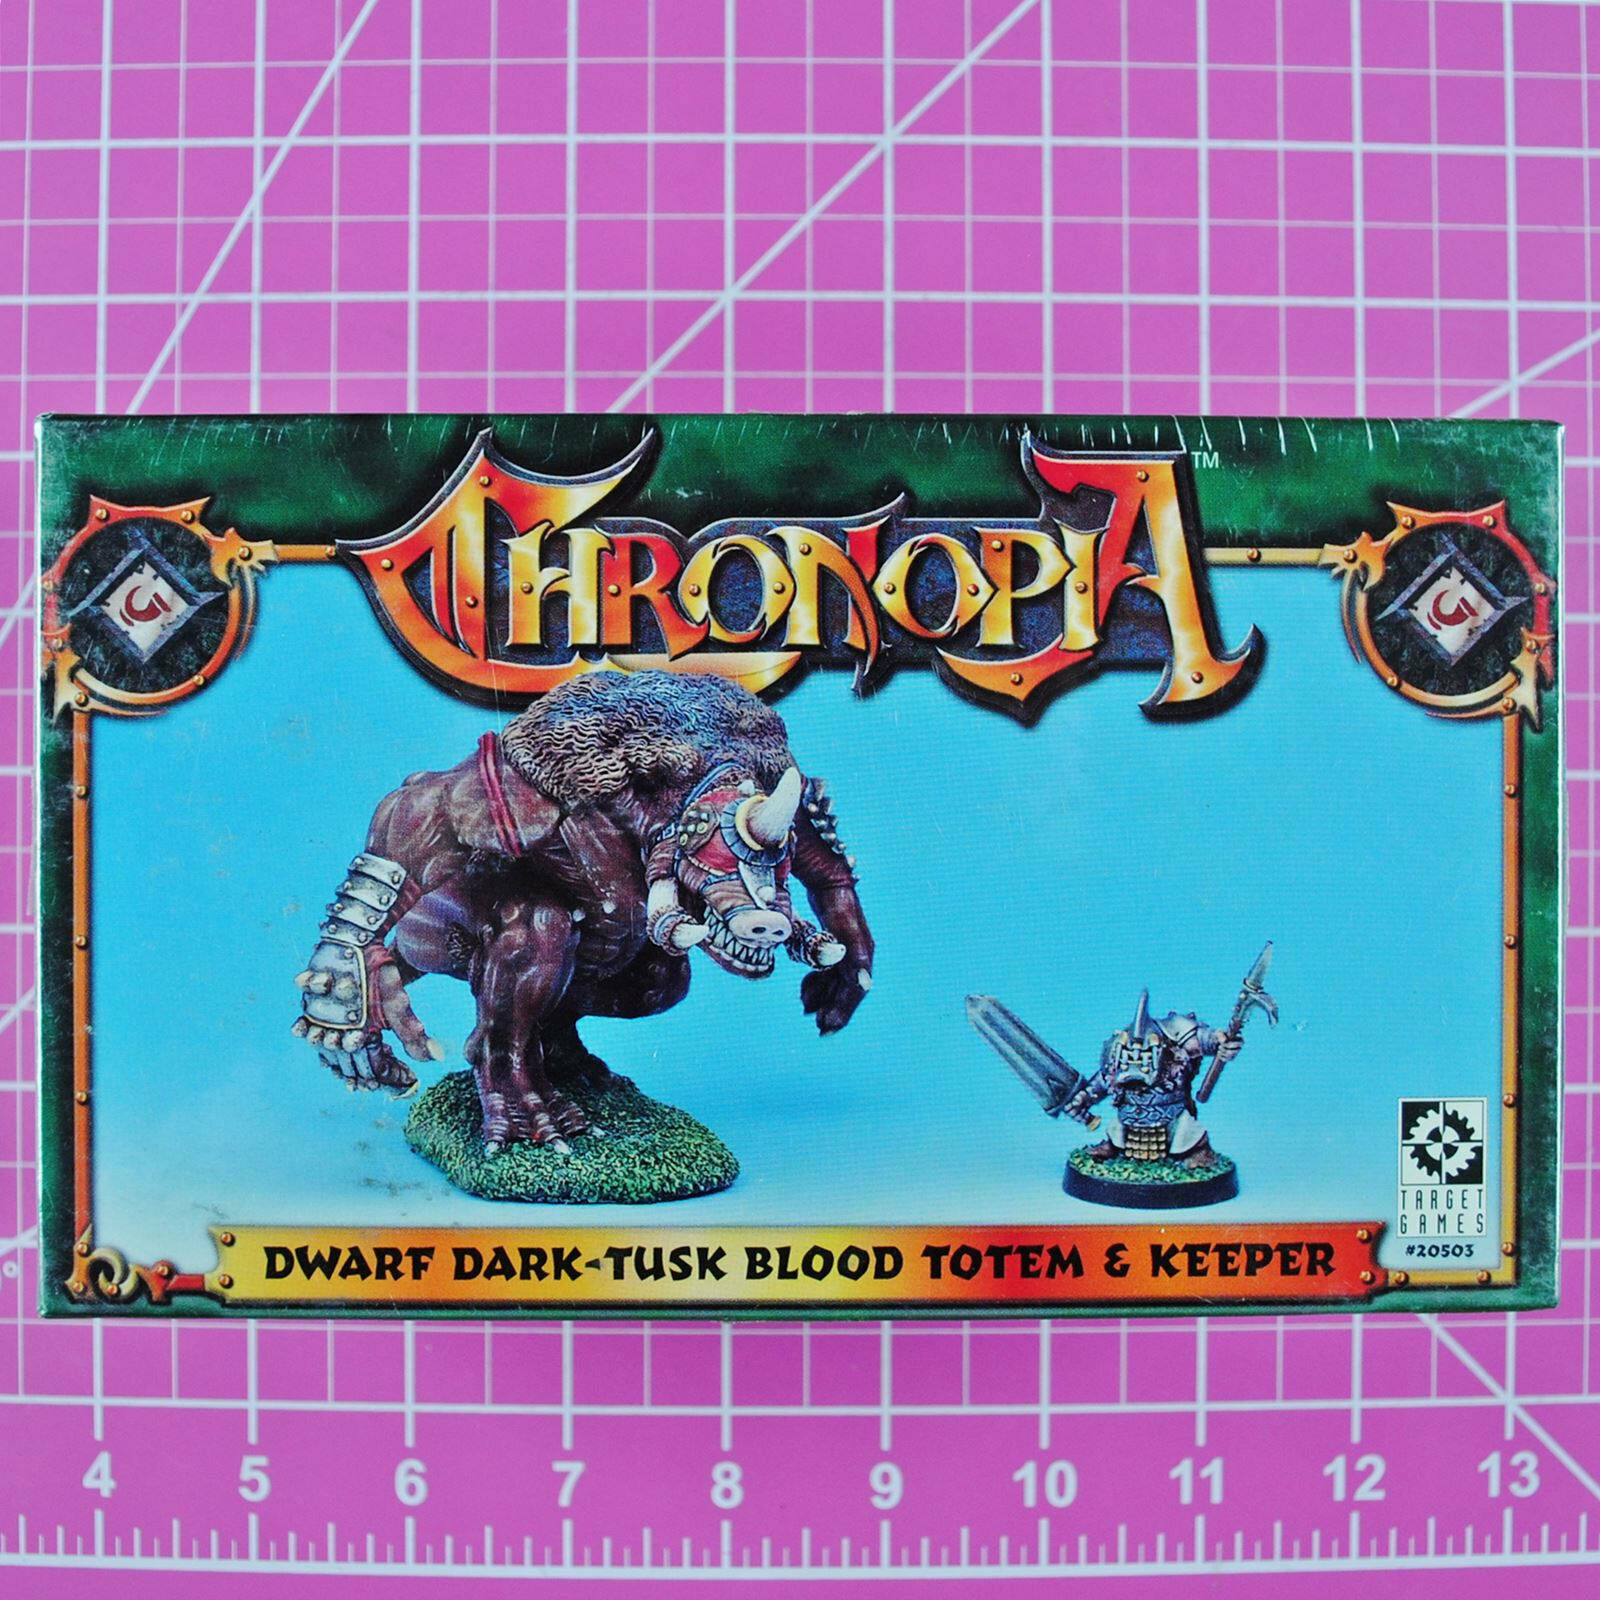 Chronopia Dwarf Dark-Tusk Blood Totem & Keeper NIB OOP Target Games Heartbreaker